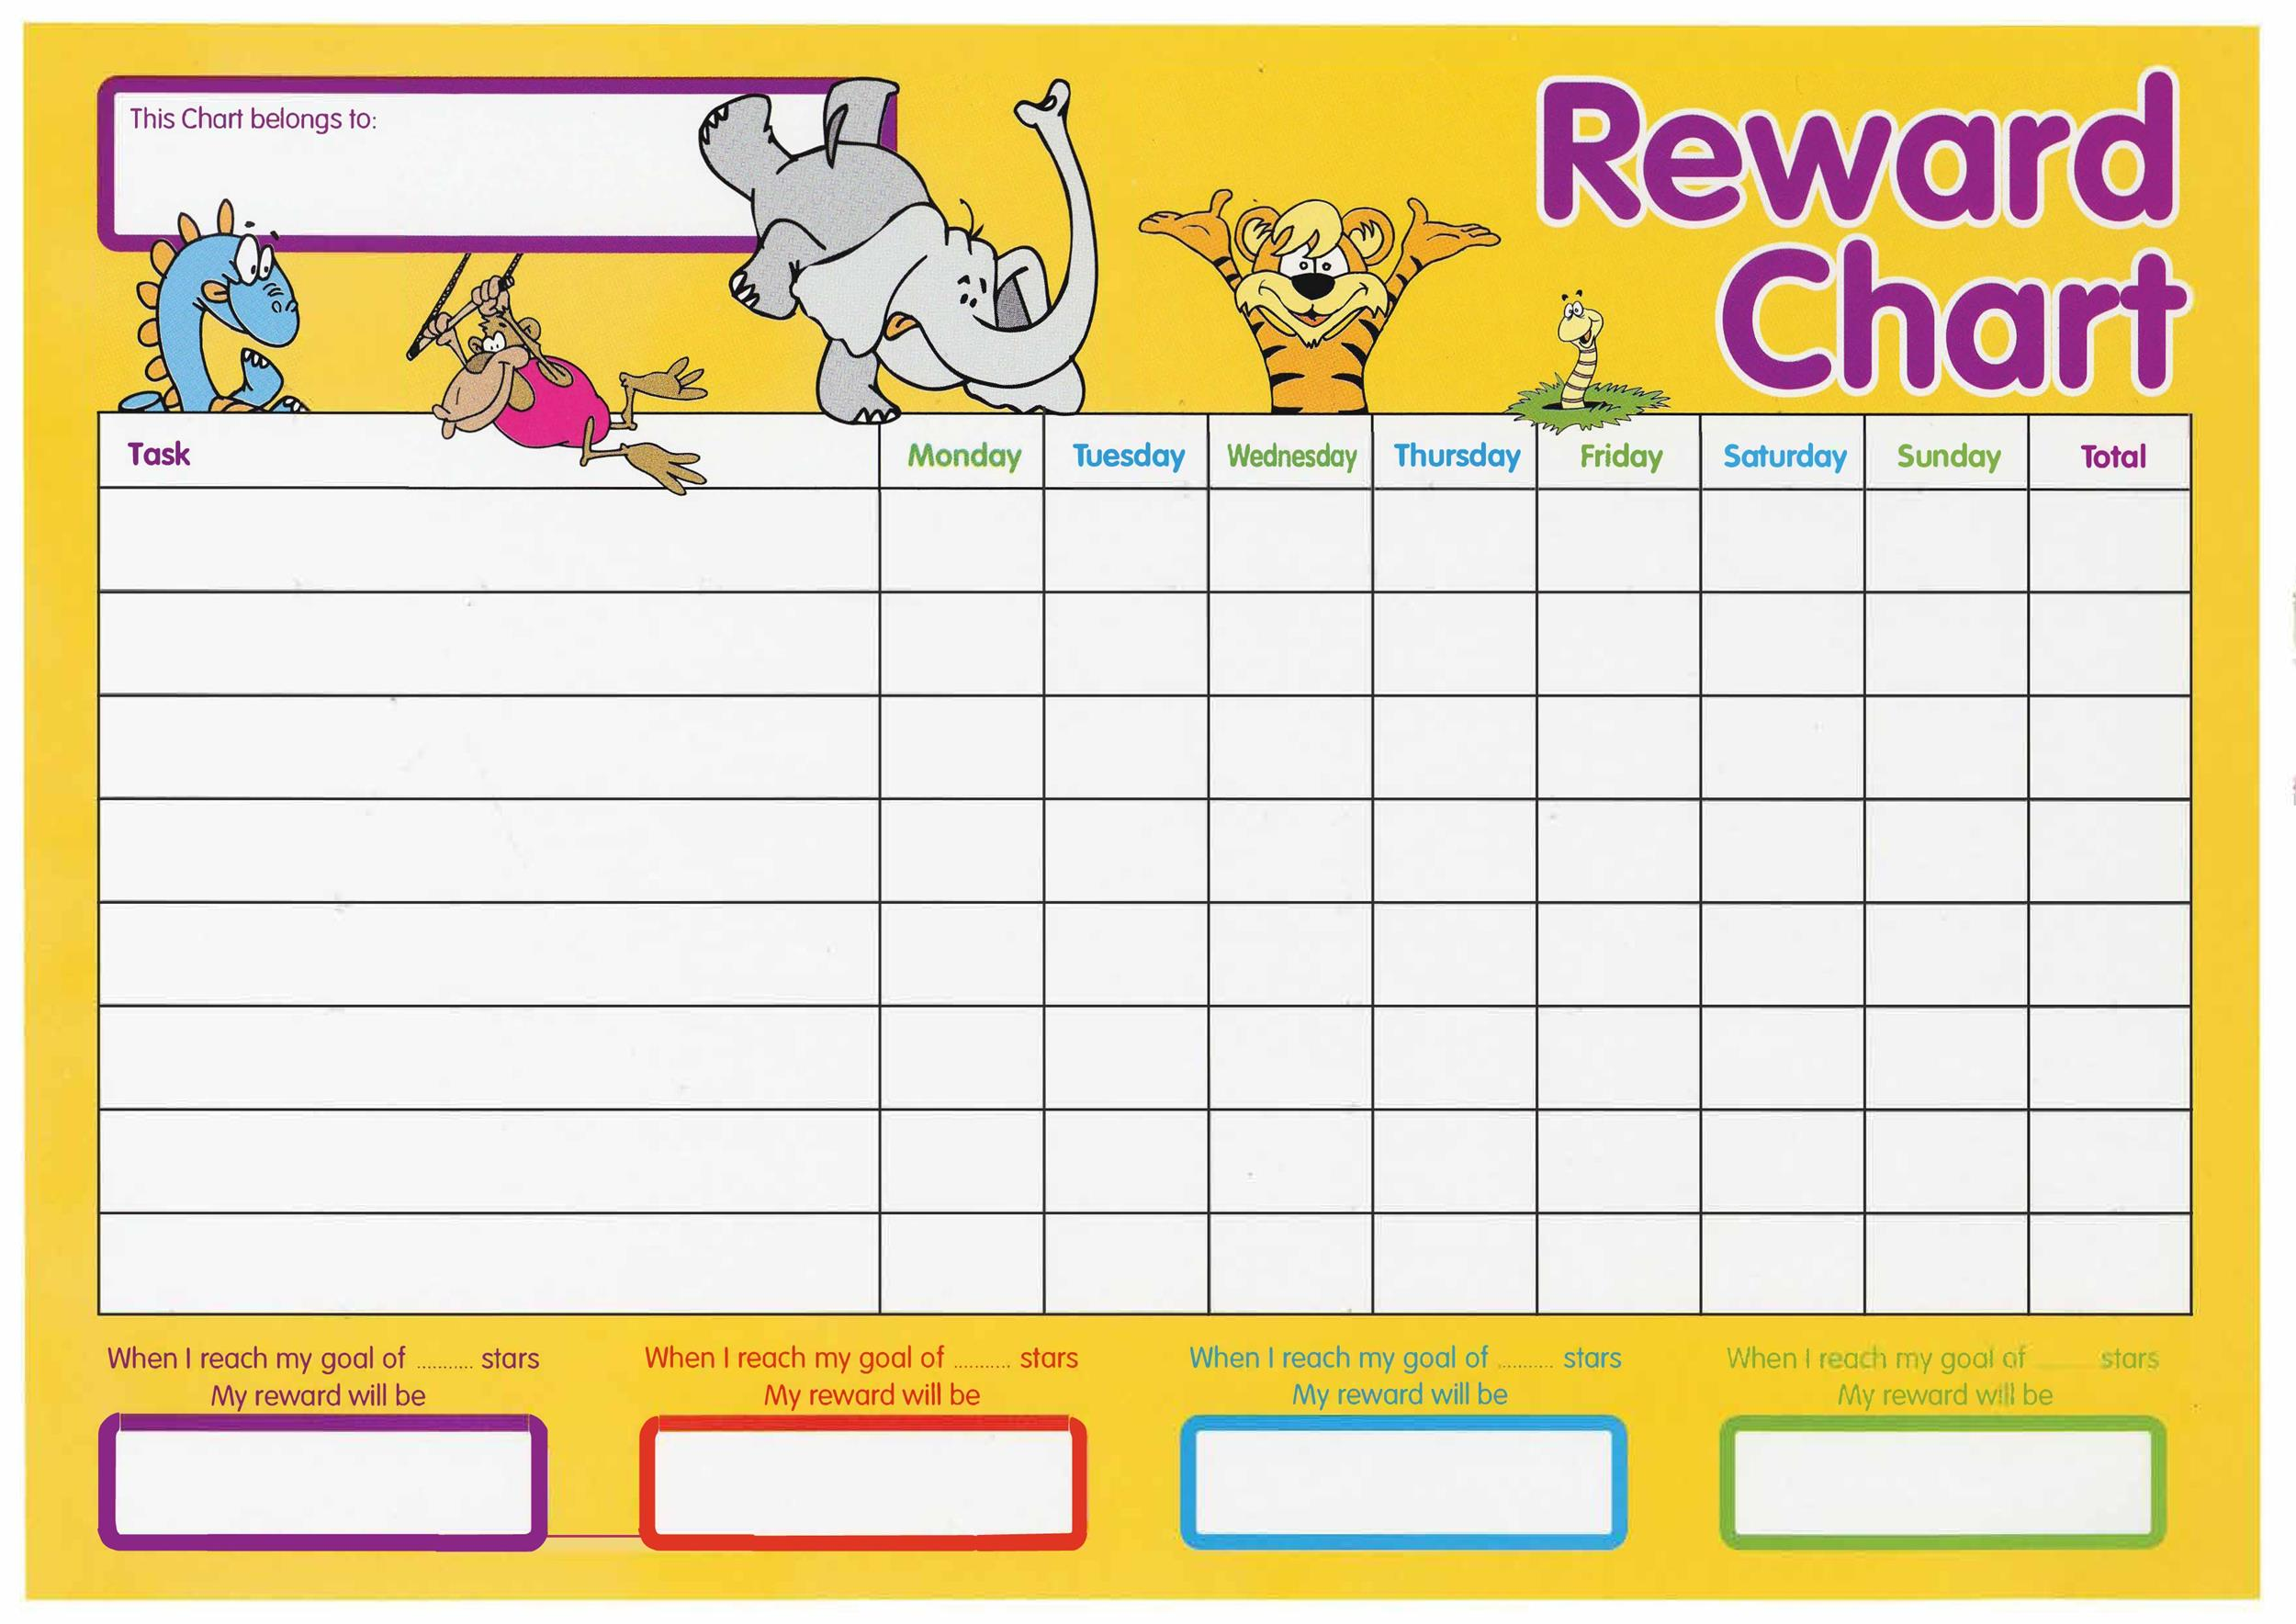 Challenger image intended for reward chart printable